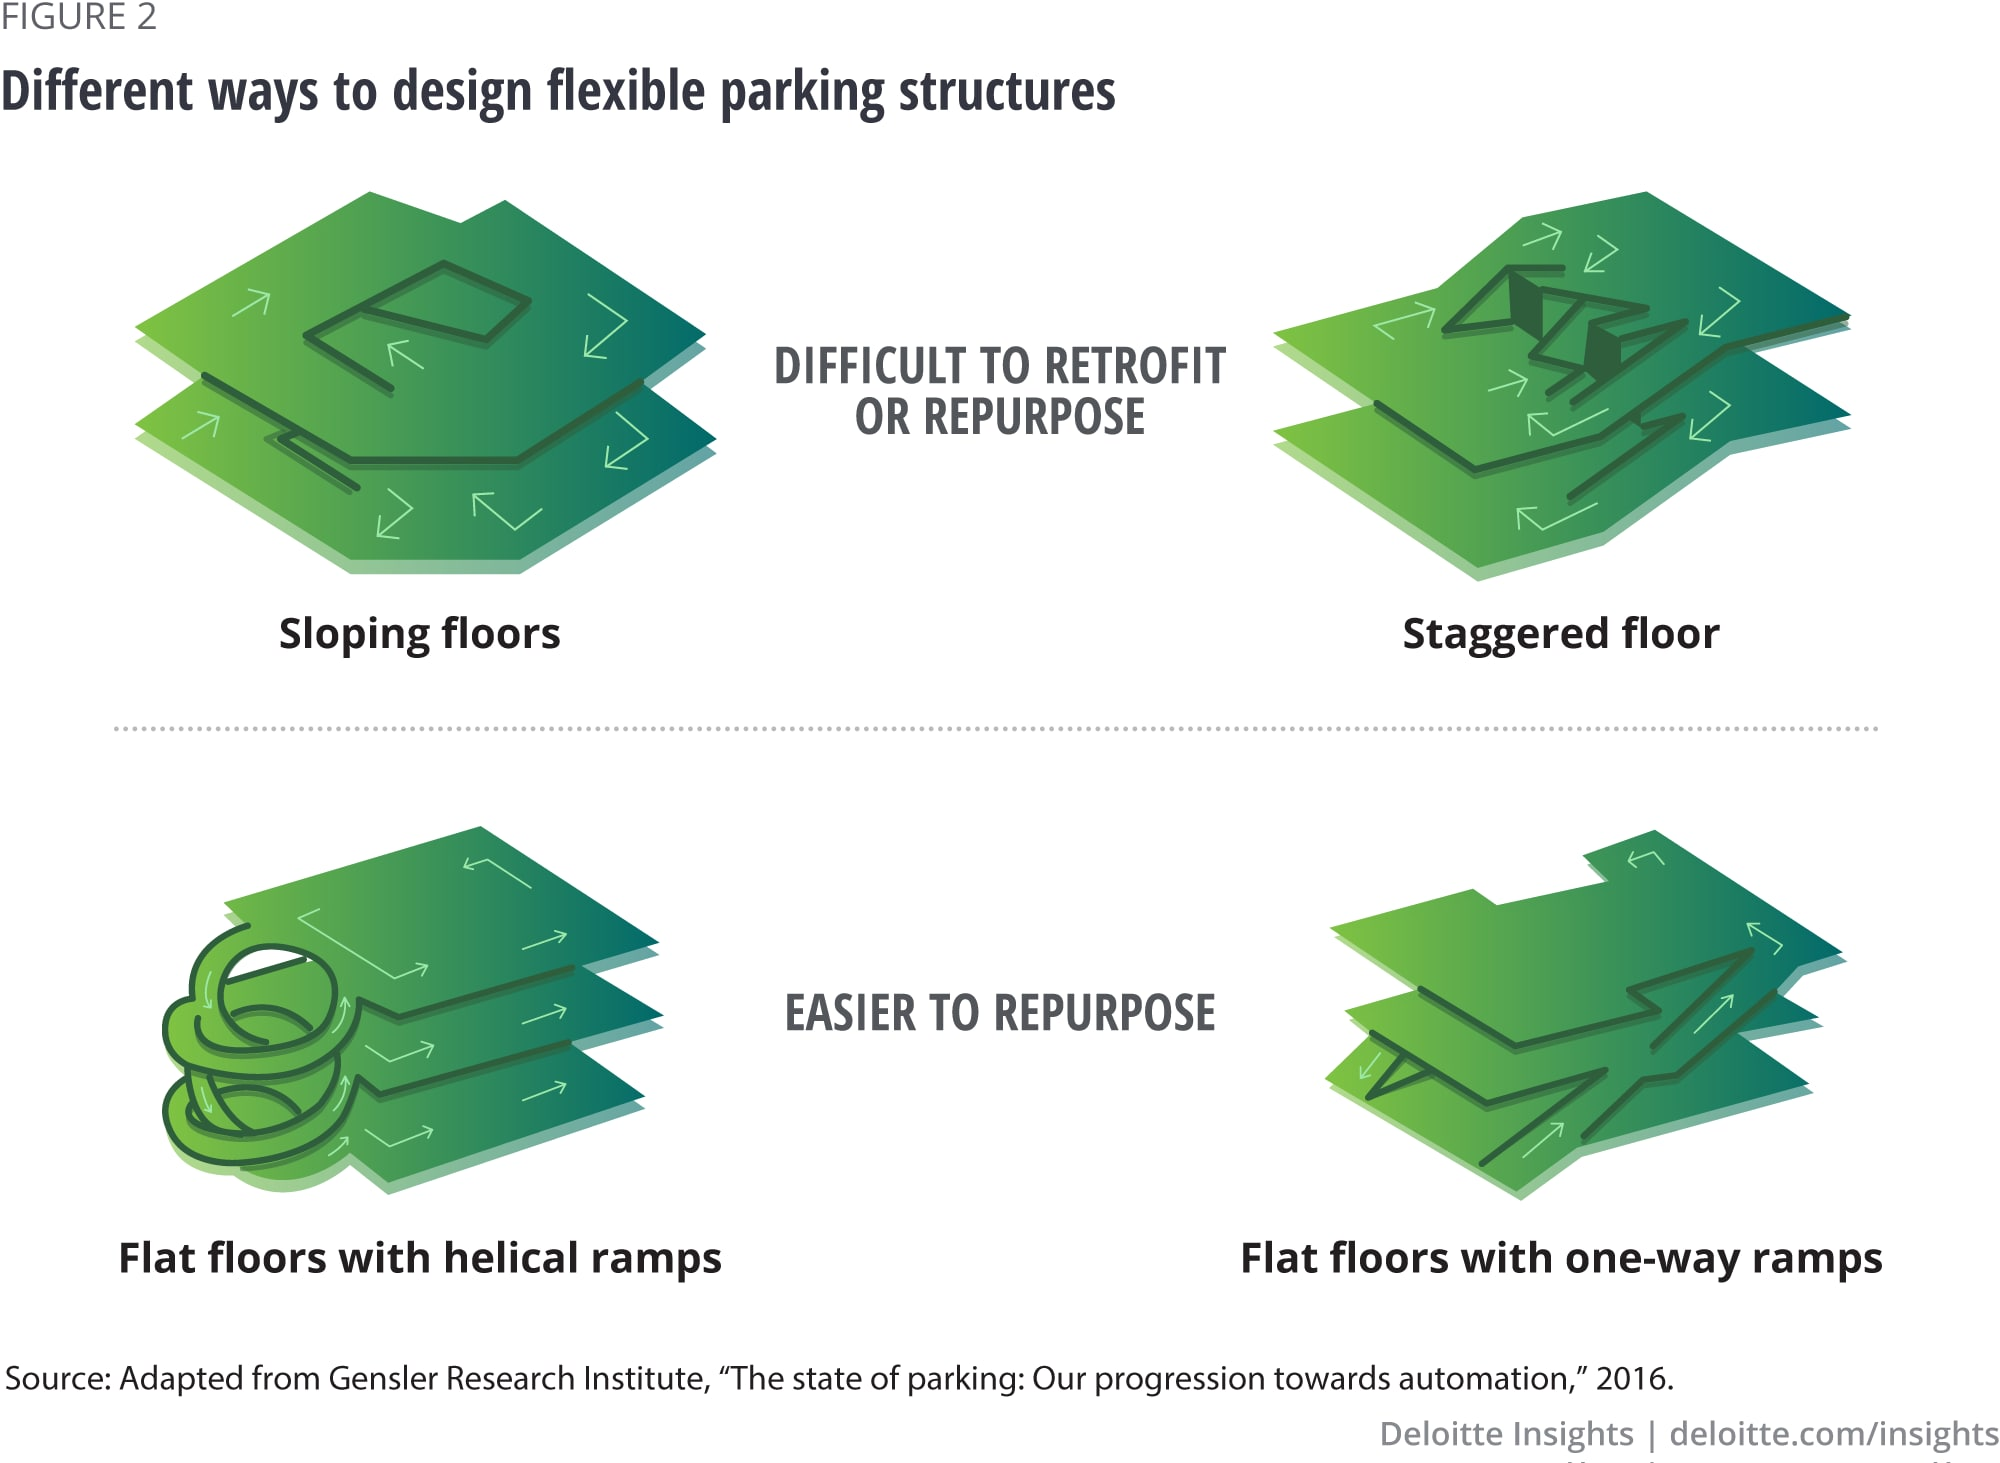 Different ways to design flexible parking structures